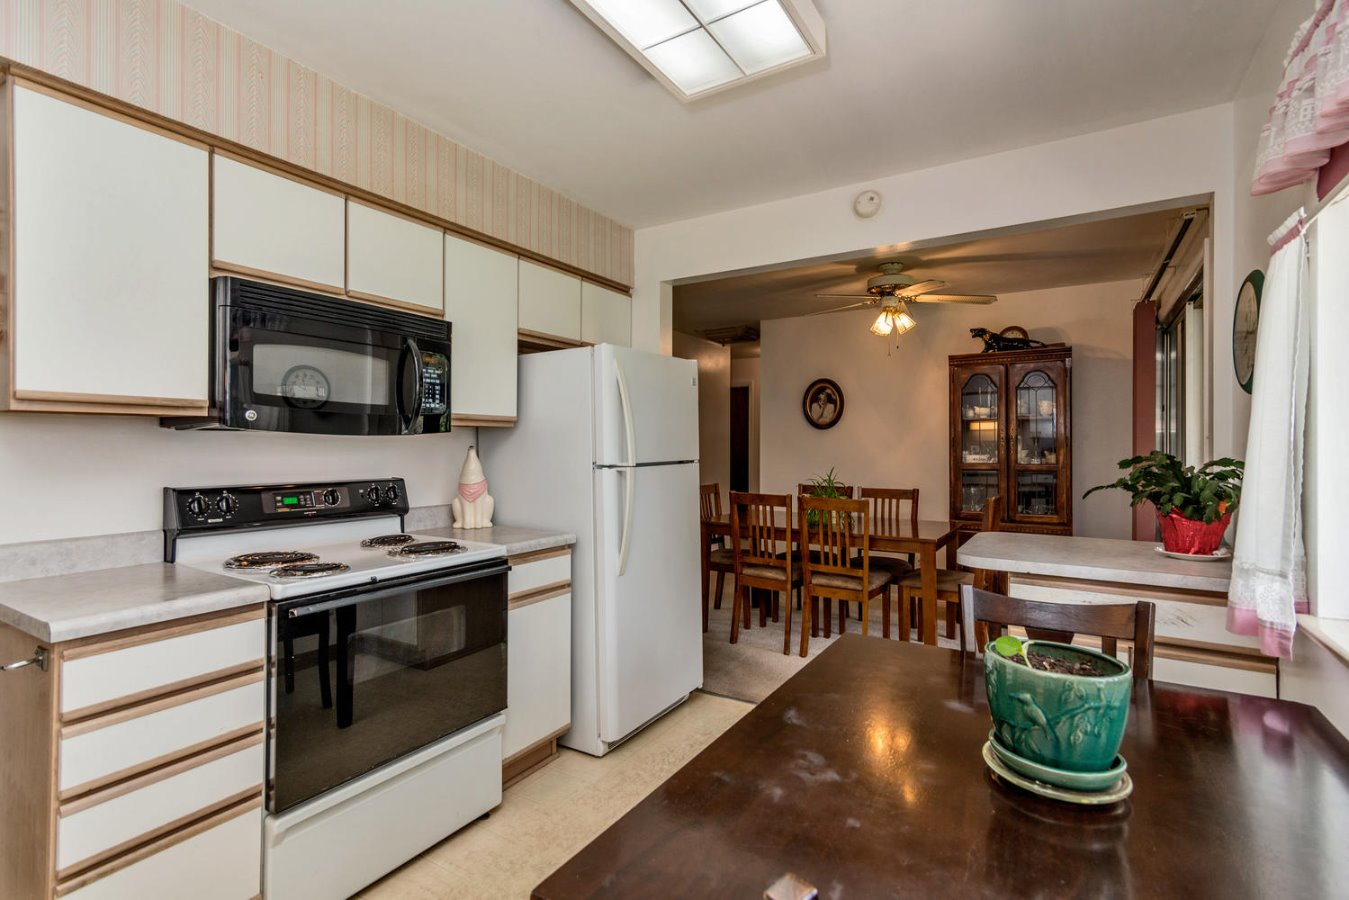 Kitchen Appliances, Freezer & W/D are Included